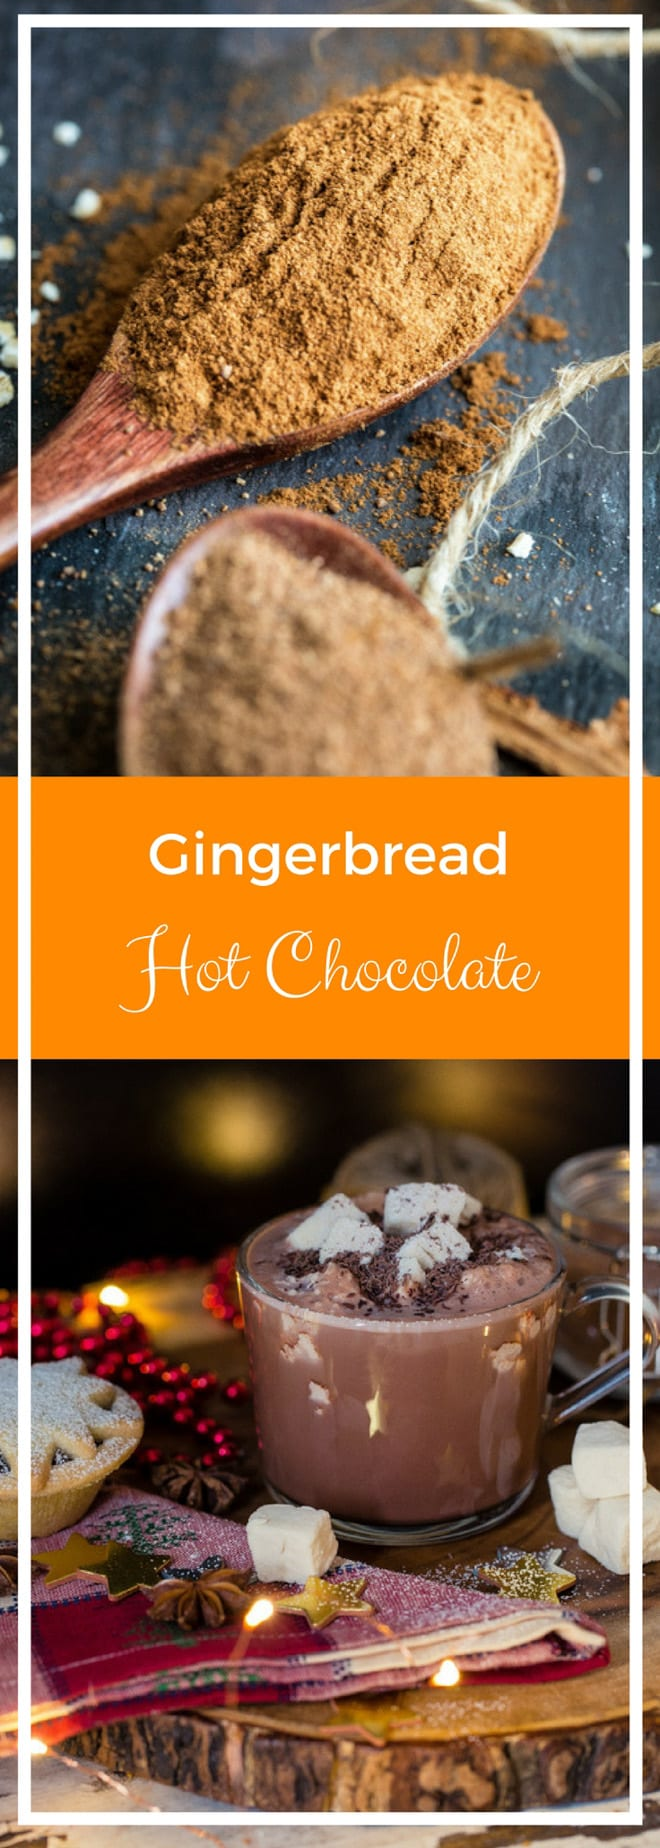 Gingerbread Hot Chocolate - How to make your own vegan chocolate mix for a gloriously rich, festive and warming drink | thecookandhim.com